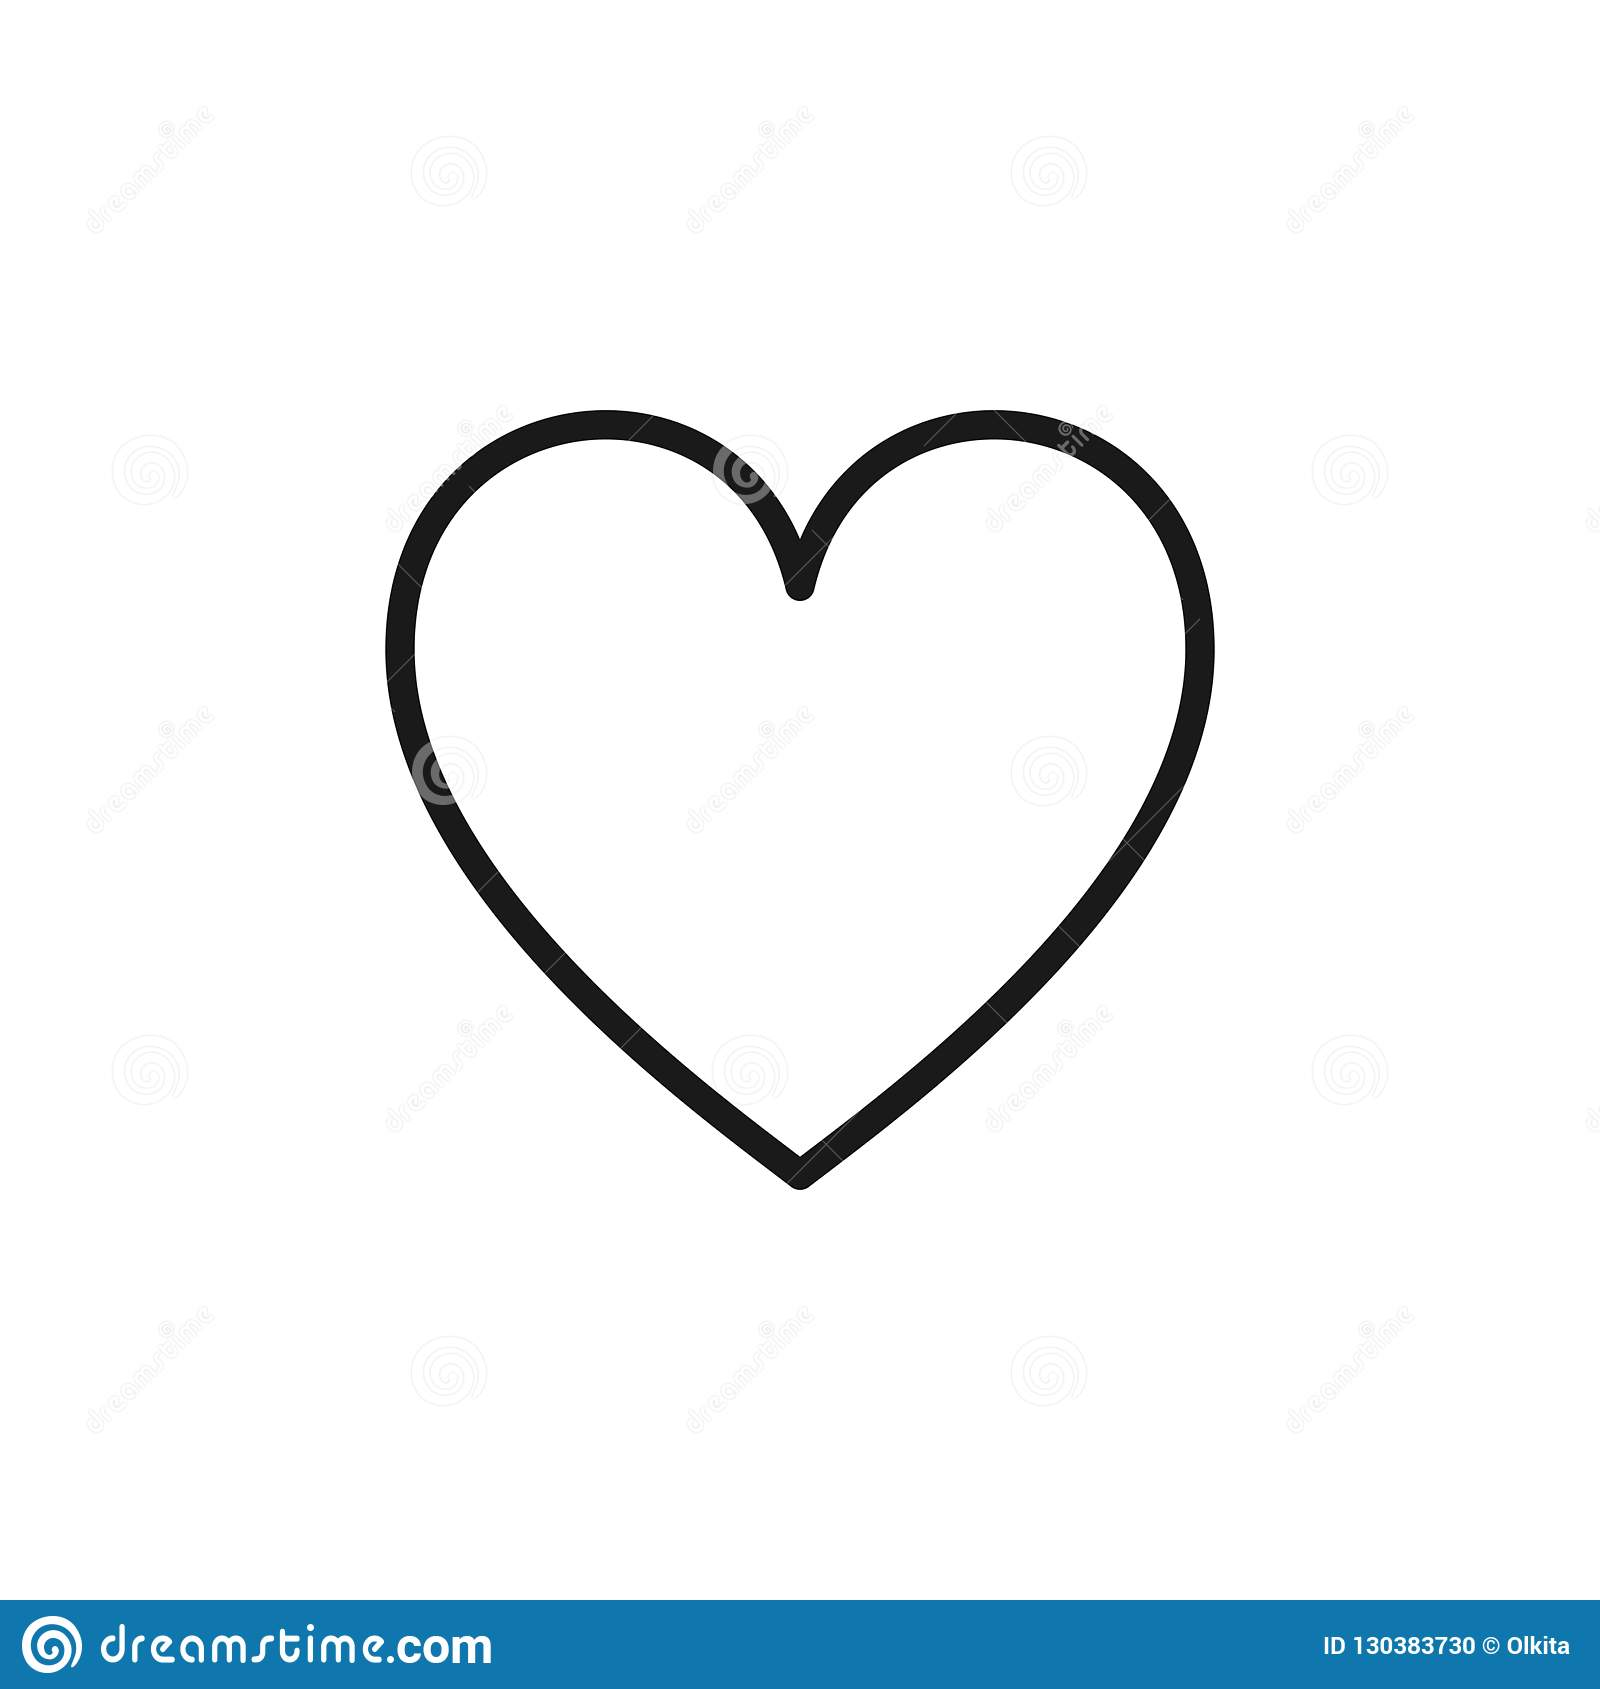 Black Isolated Outline Icon Of Heart On White Background